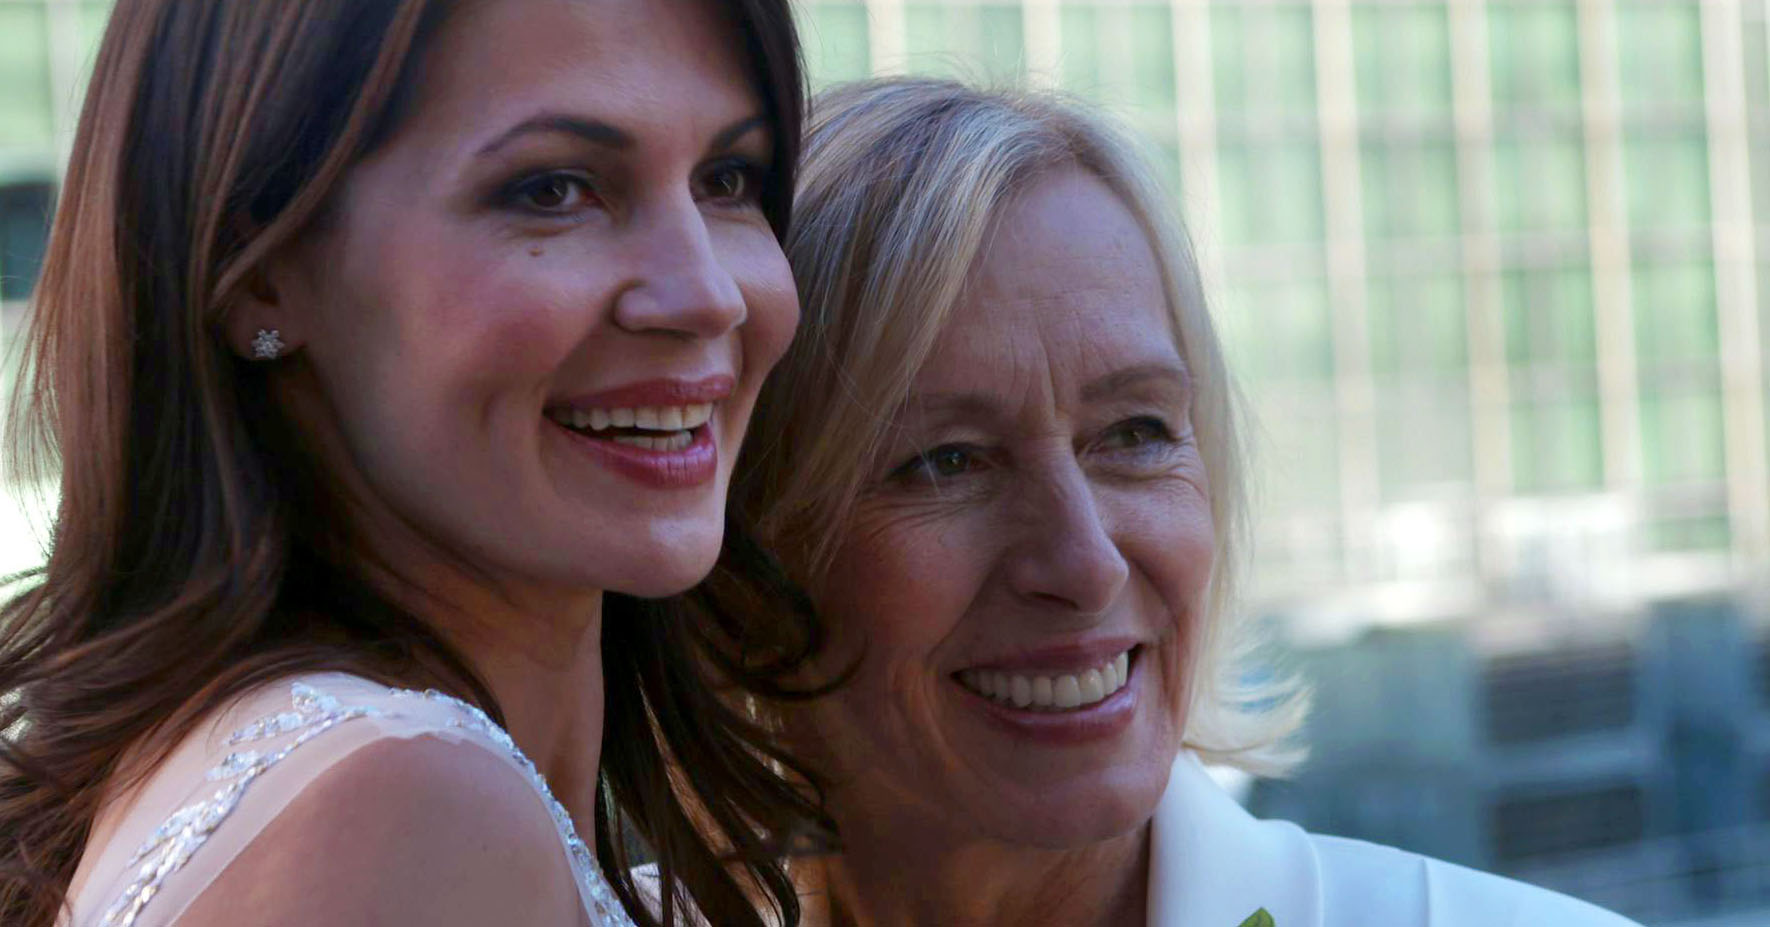 Martina Navratilova and Julia Lemigrova at their New York wedding in 2014